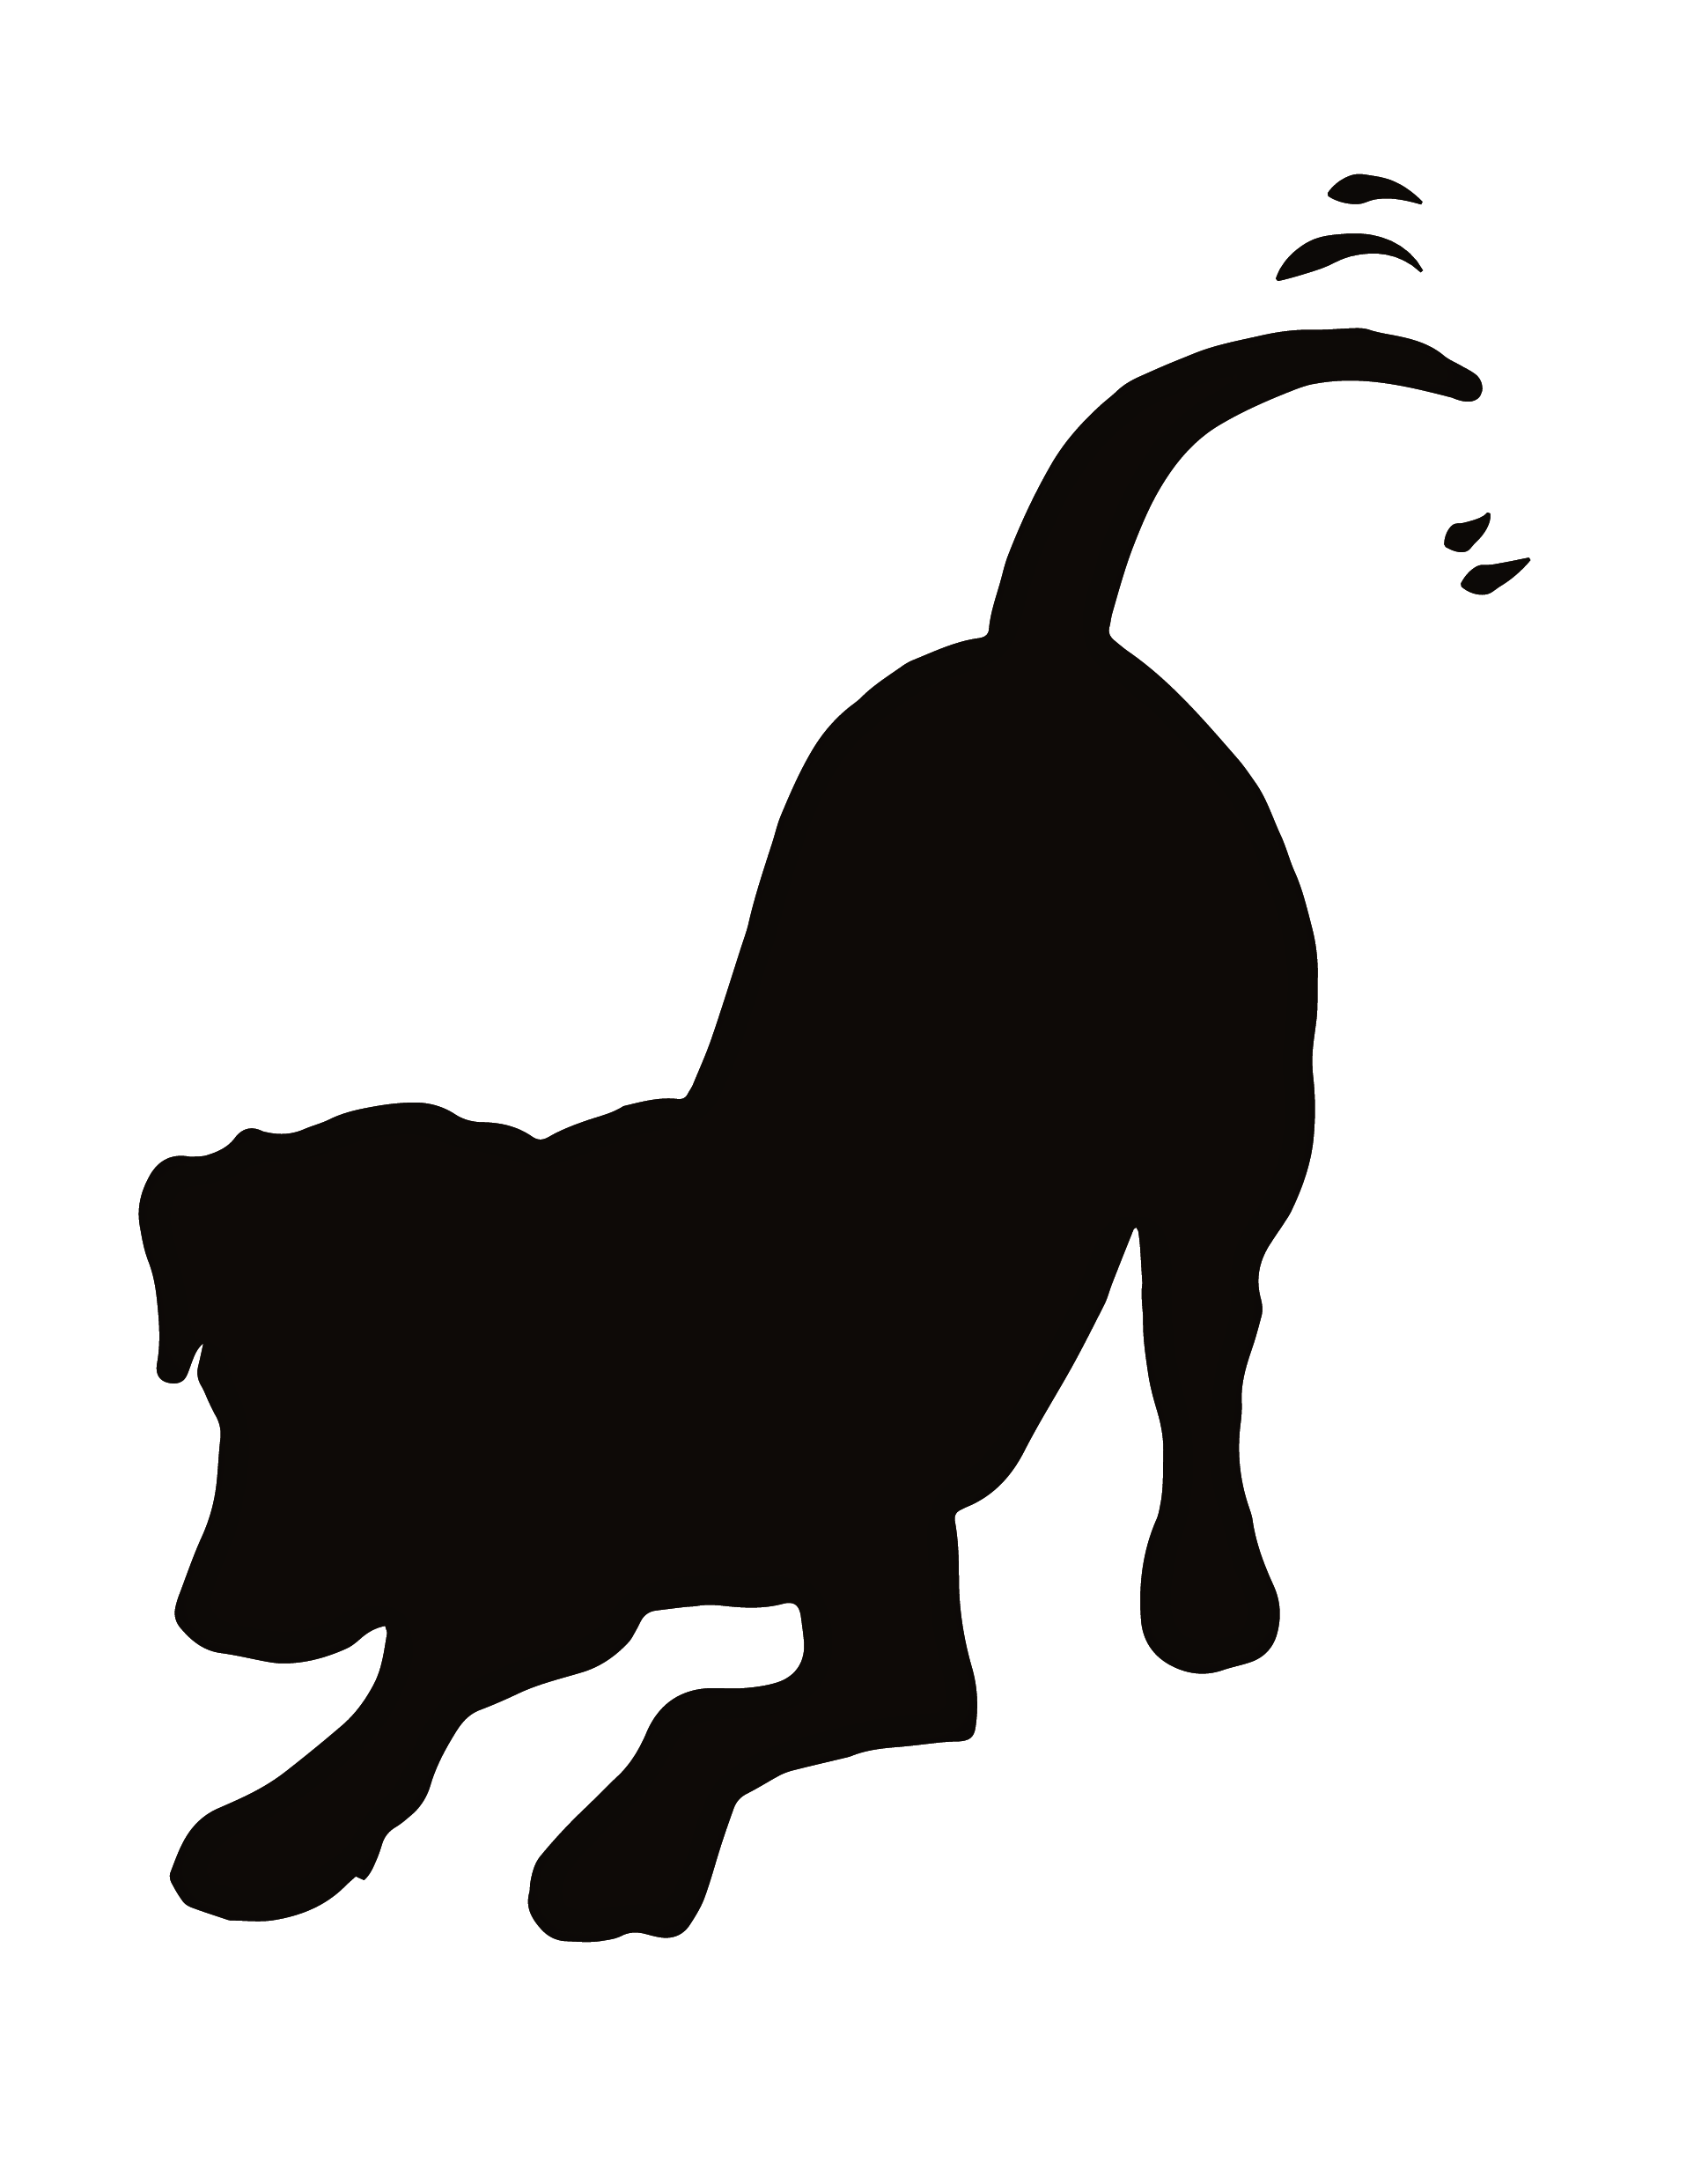 eaf21978146e Clip art images of dogs, cats, kittens and puppies in black transparent (.